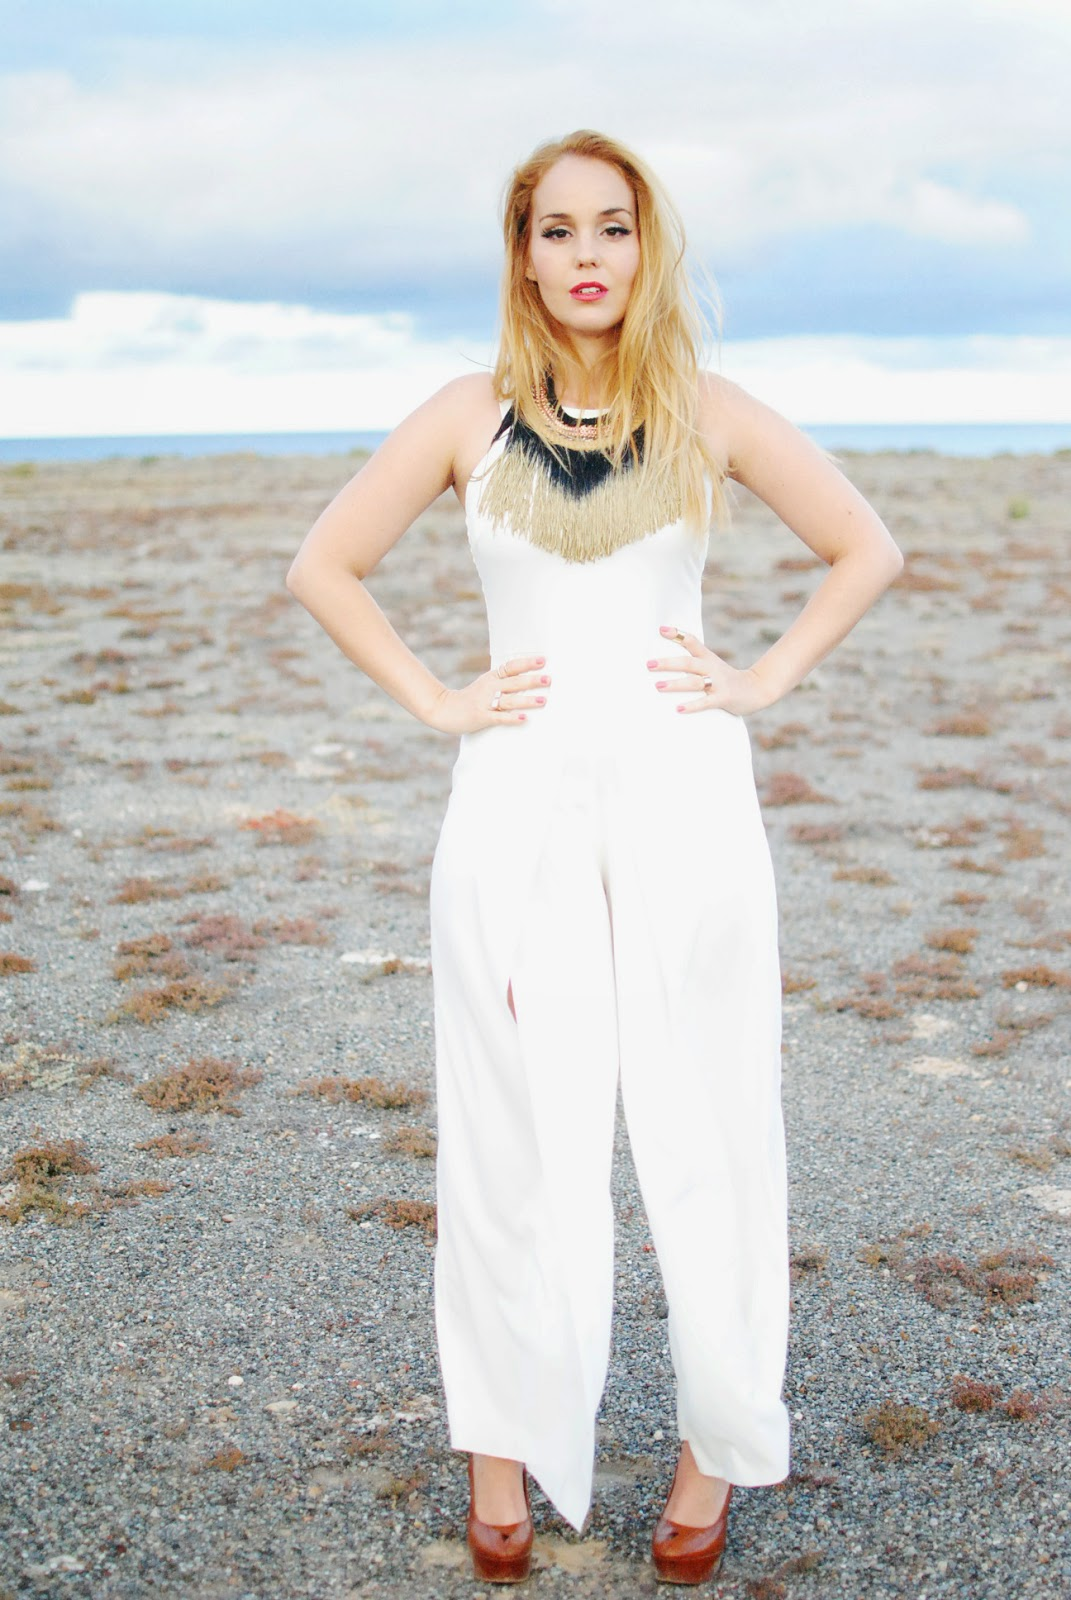 nery hdez, jumpsuits, axparis, total white, adolfo dominguez, fringes necklace